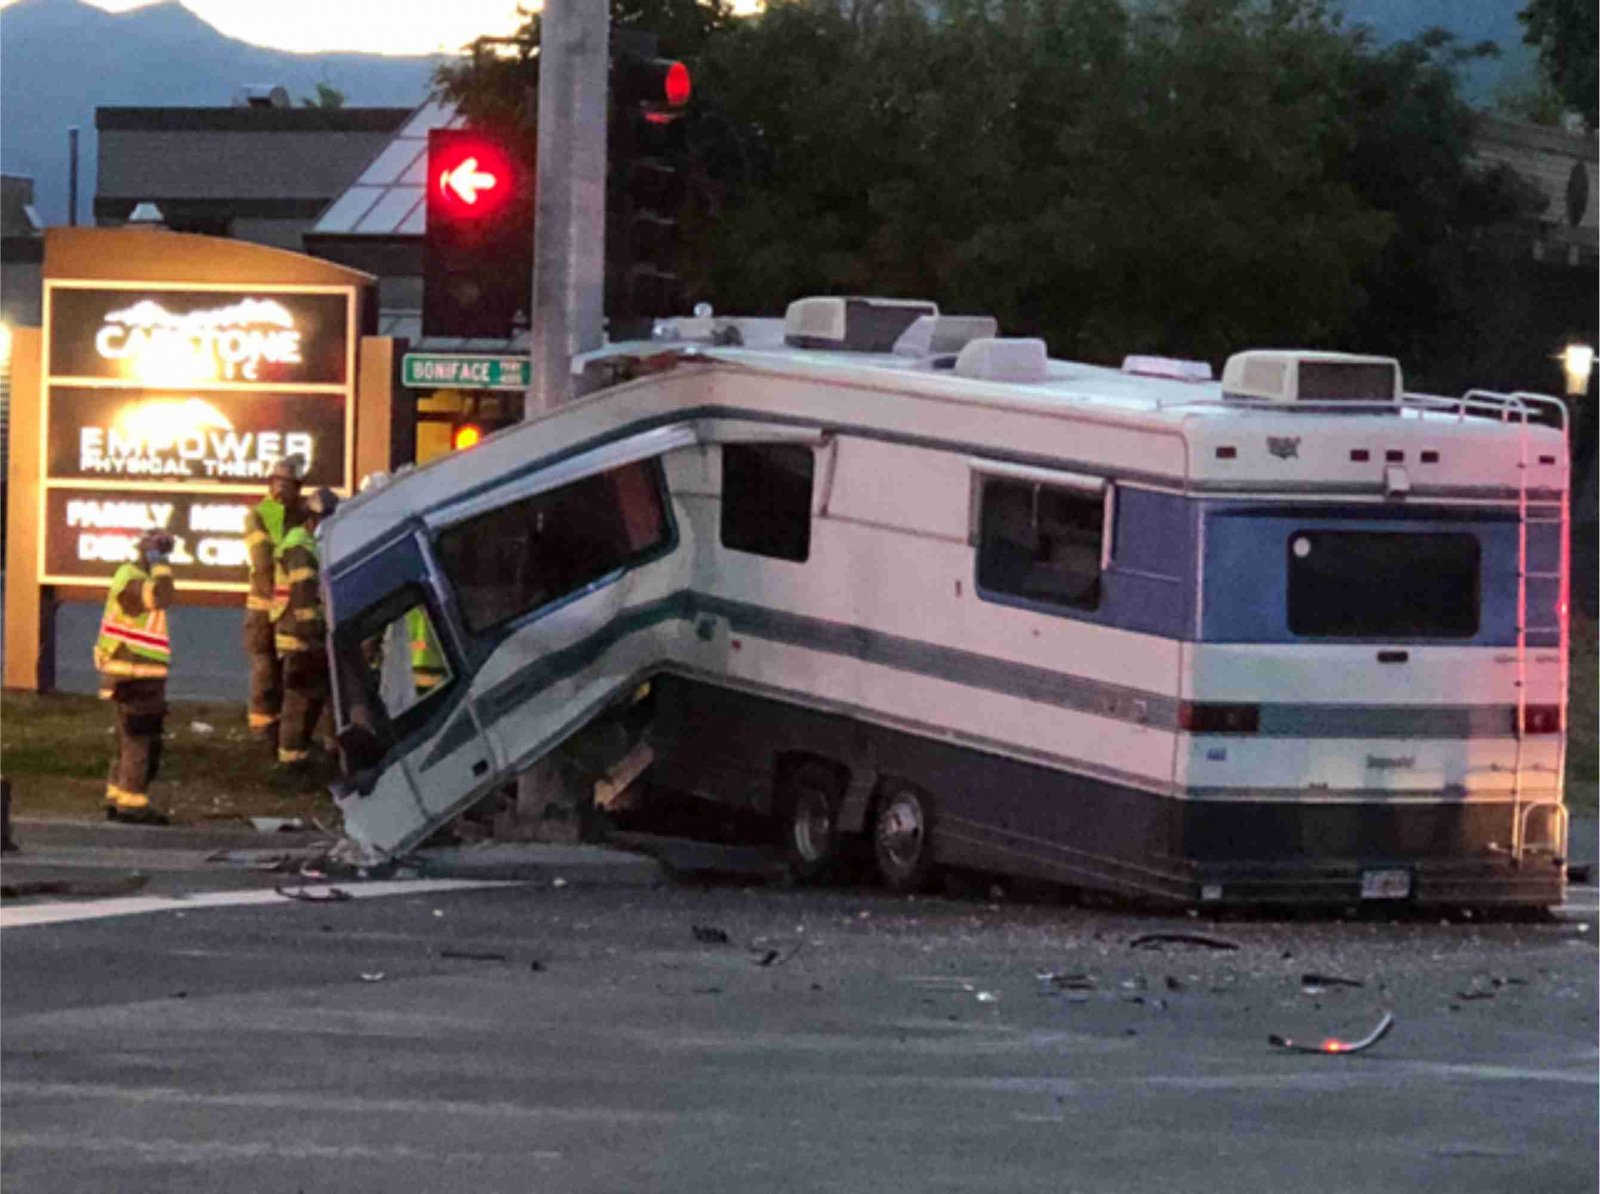 Click image for larger version  Name:RV accident.jpg Views:228 Size:235.6 KB ID:214634